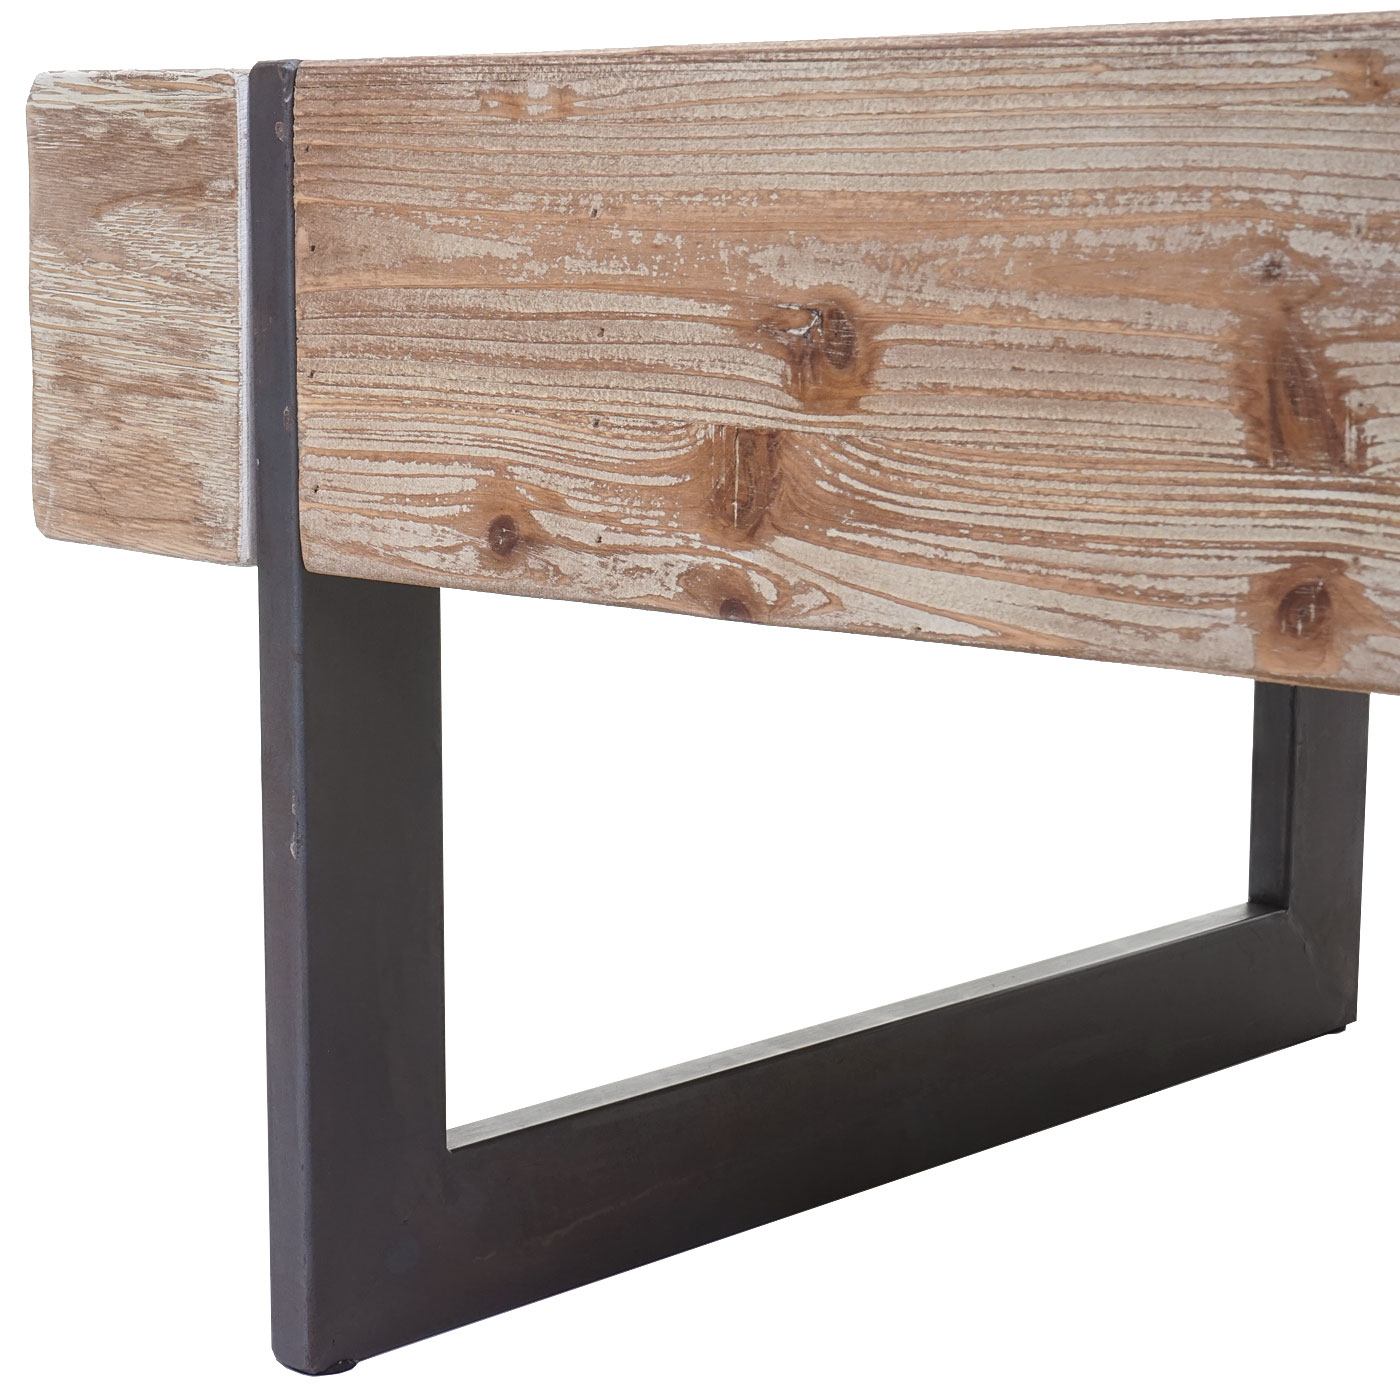 Couchtisch Rustikal Holz Couchtisch Holz Rustikal Couchtisch Holz Rustikal